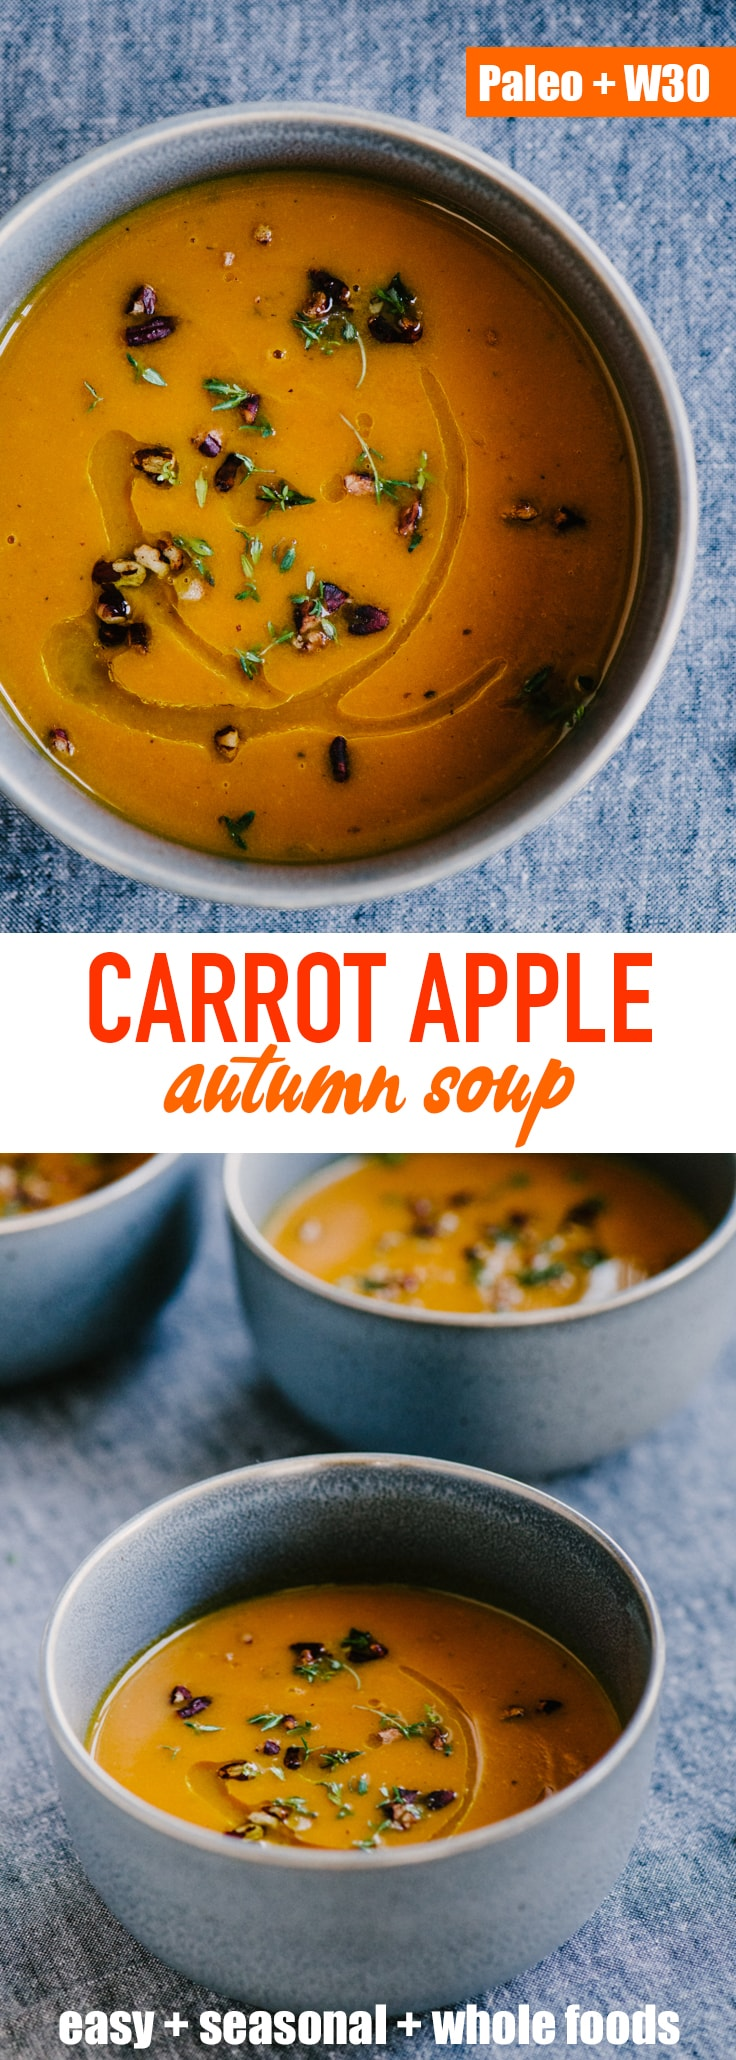 This roasted carrot apple soup is like a big hug - warm, comforting, and nourishing for the body and soul. It's a nutty and sweet fall soup recipe that's naturally paleo, whole 30 and gluten-free. #paleo #whole30 #fall #soup #wholefood